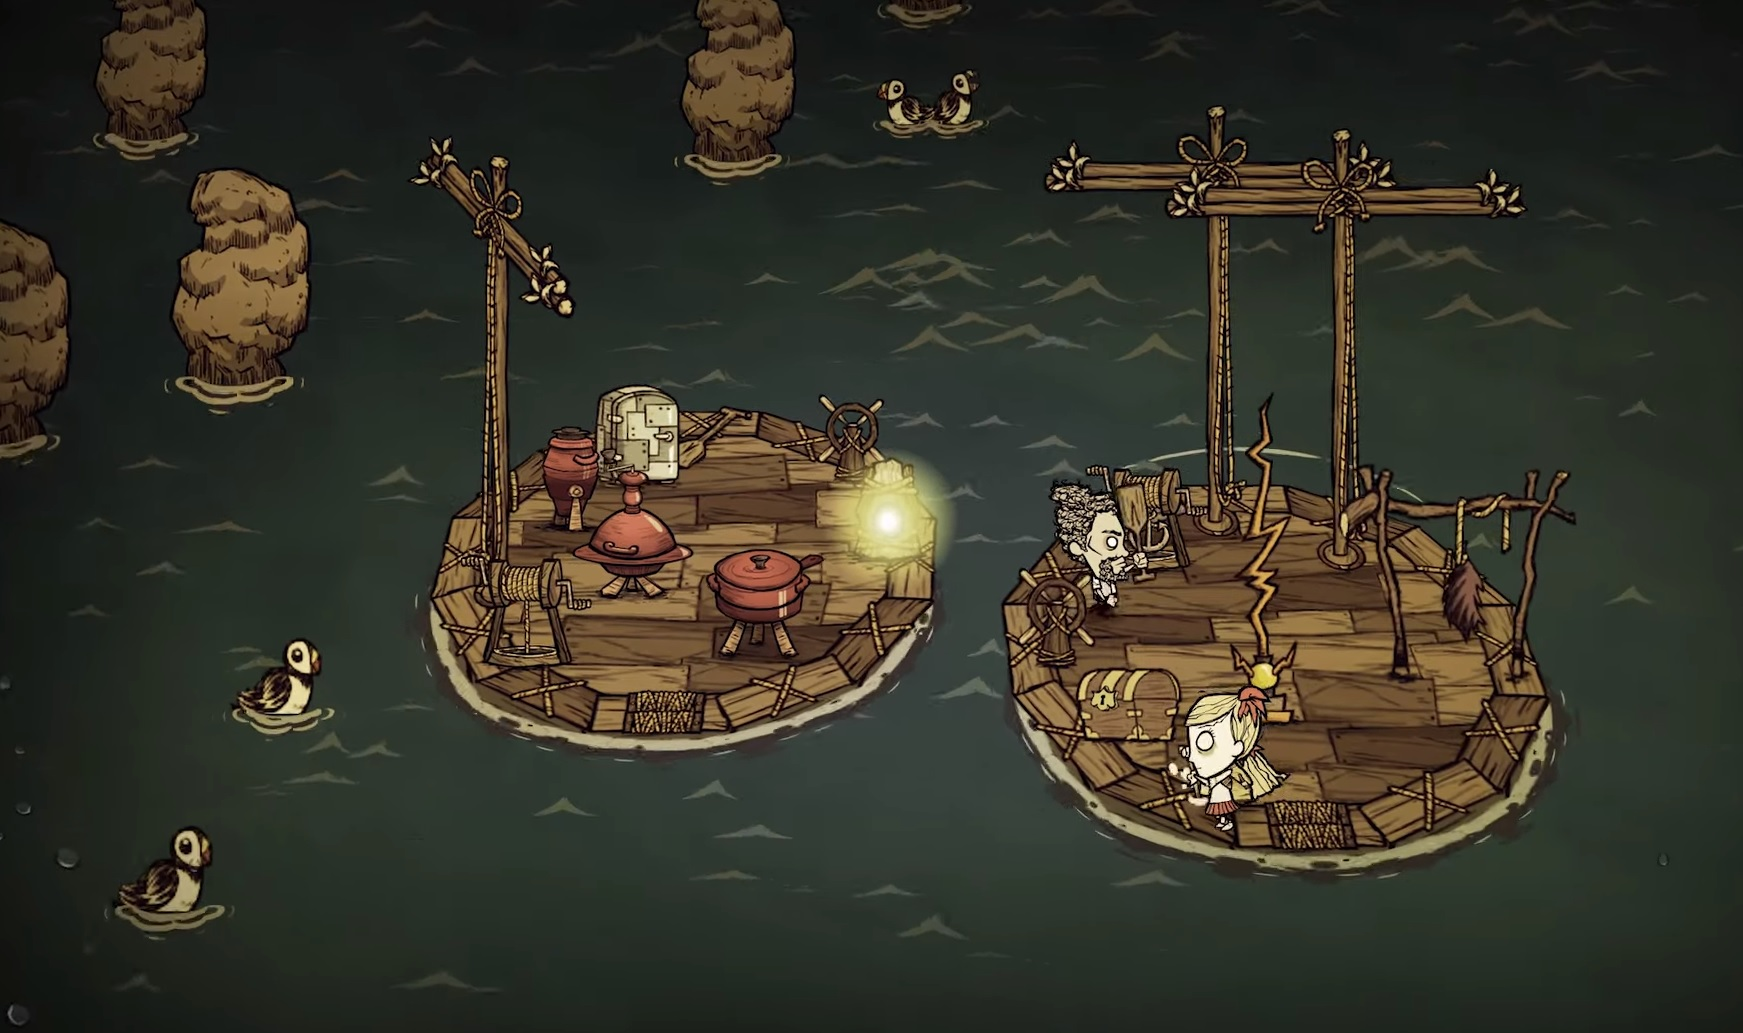 Don't Starve ther introduces rickety multiplayer boats ... on bloodborne map, dark souls map, dead rising 3 map, dragon age: inquisition map, h1z1 map, dying light map, five nights at freddy's map, strider map, lords of the fallen map, damnation map, assassin's creed unity map, crackdown 2 map, icewind dale map, destiny map, axiom verge map, the crew map, terraria map, project zomboid map, the elder scrolls online map, everybody's gone to the rapture map,